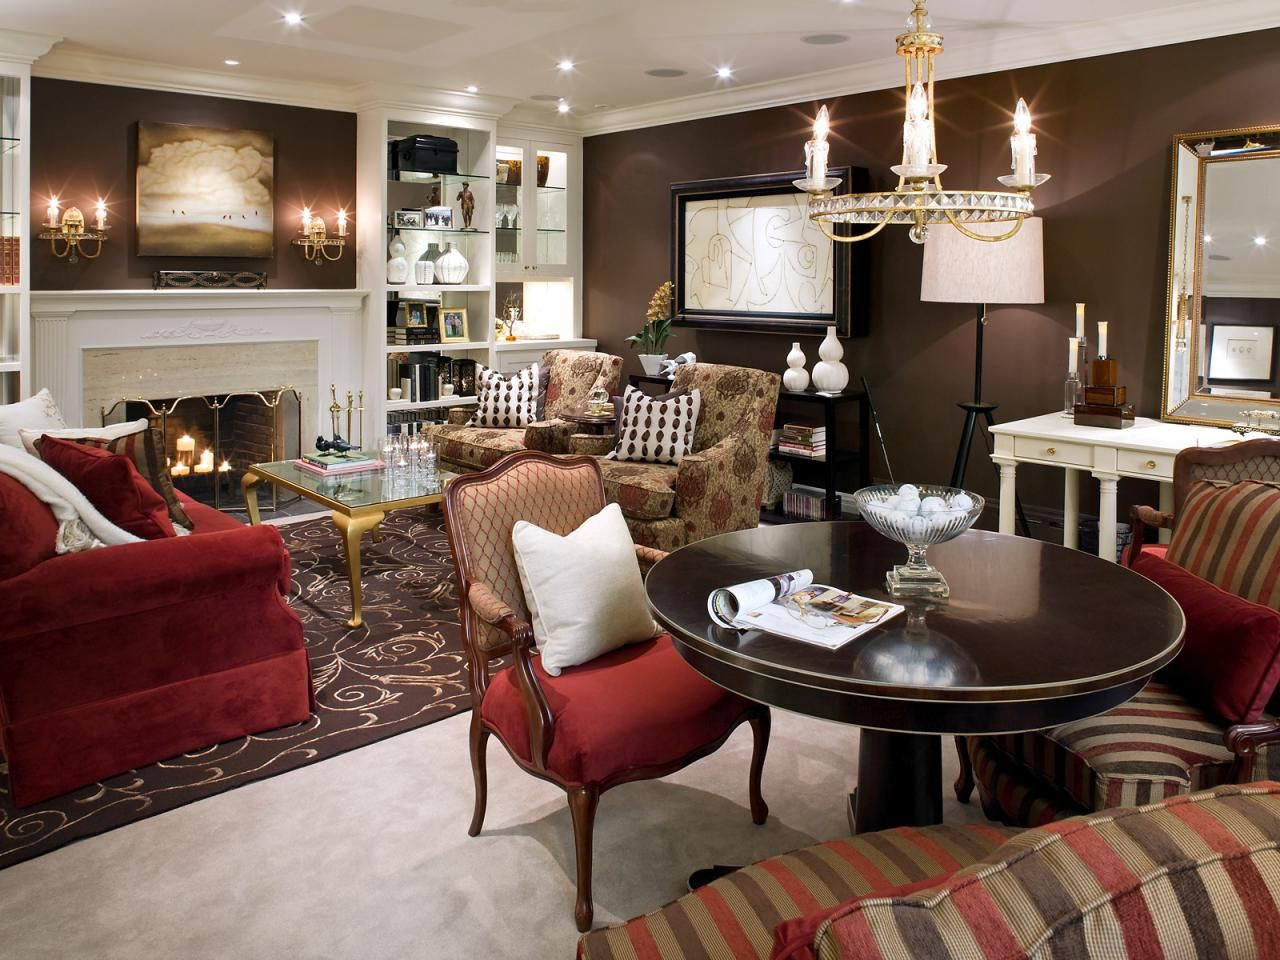 165 Best Candice Olson   Truly DIVINE Design Images On Pinterest | Candice  Olson, Bedrooms And Hgtv